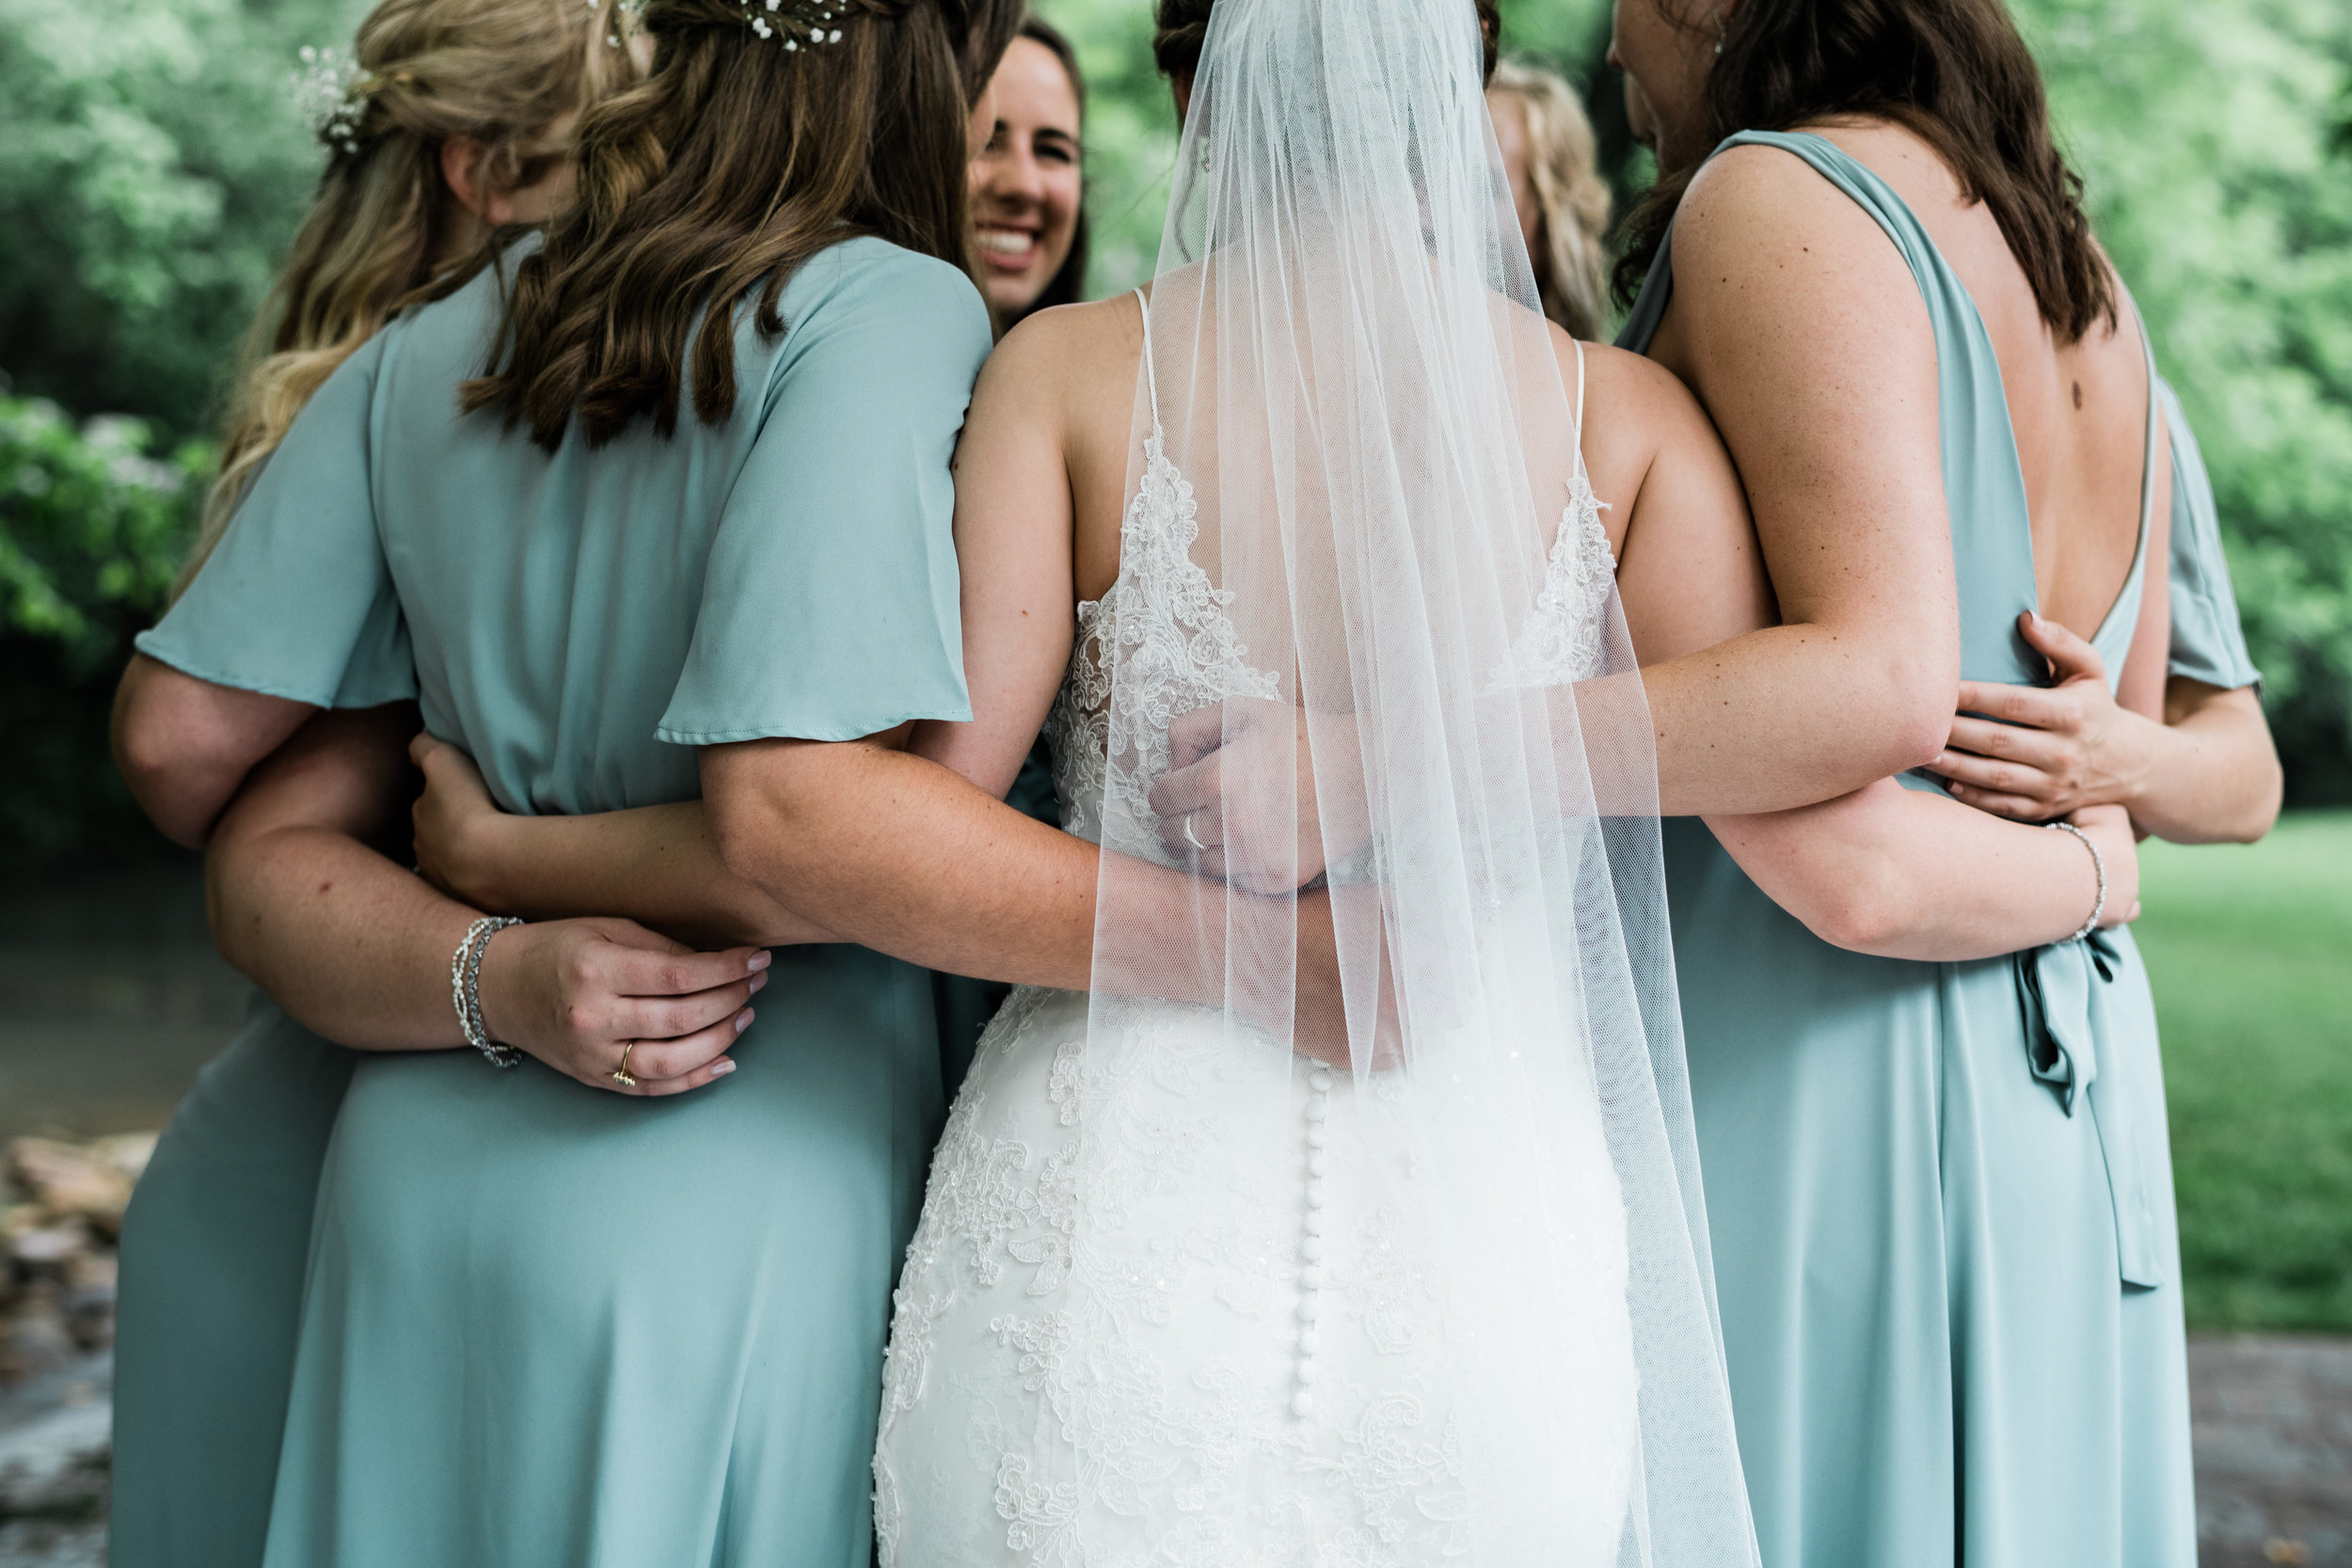 Classic Wedding - Green and White Wedding - Maryville, Tennessee Wedding - The Overwhelmed Bride Wedding Blog